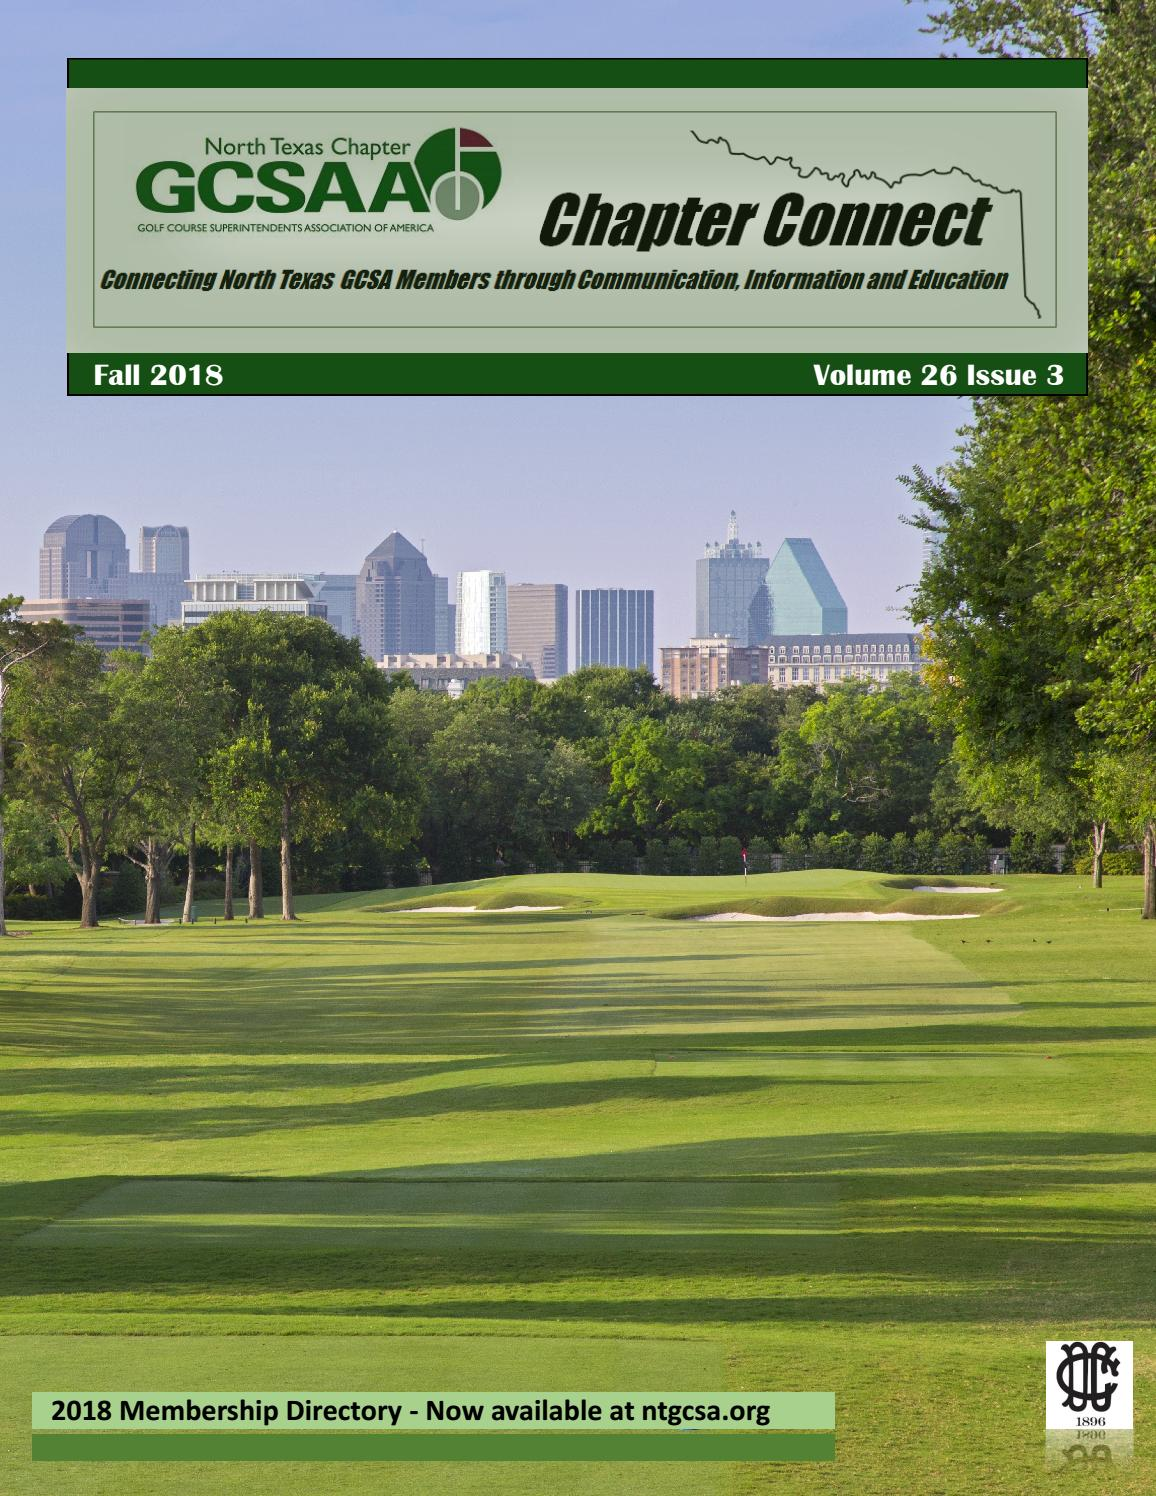 NTGCSA Chapter Connect Fall 2018 by Cloud Association